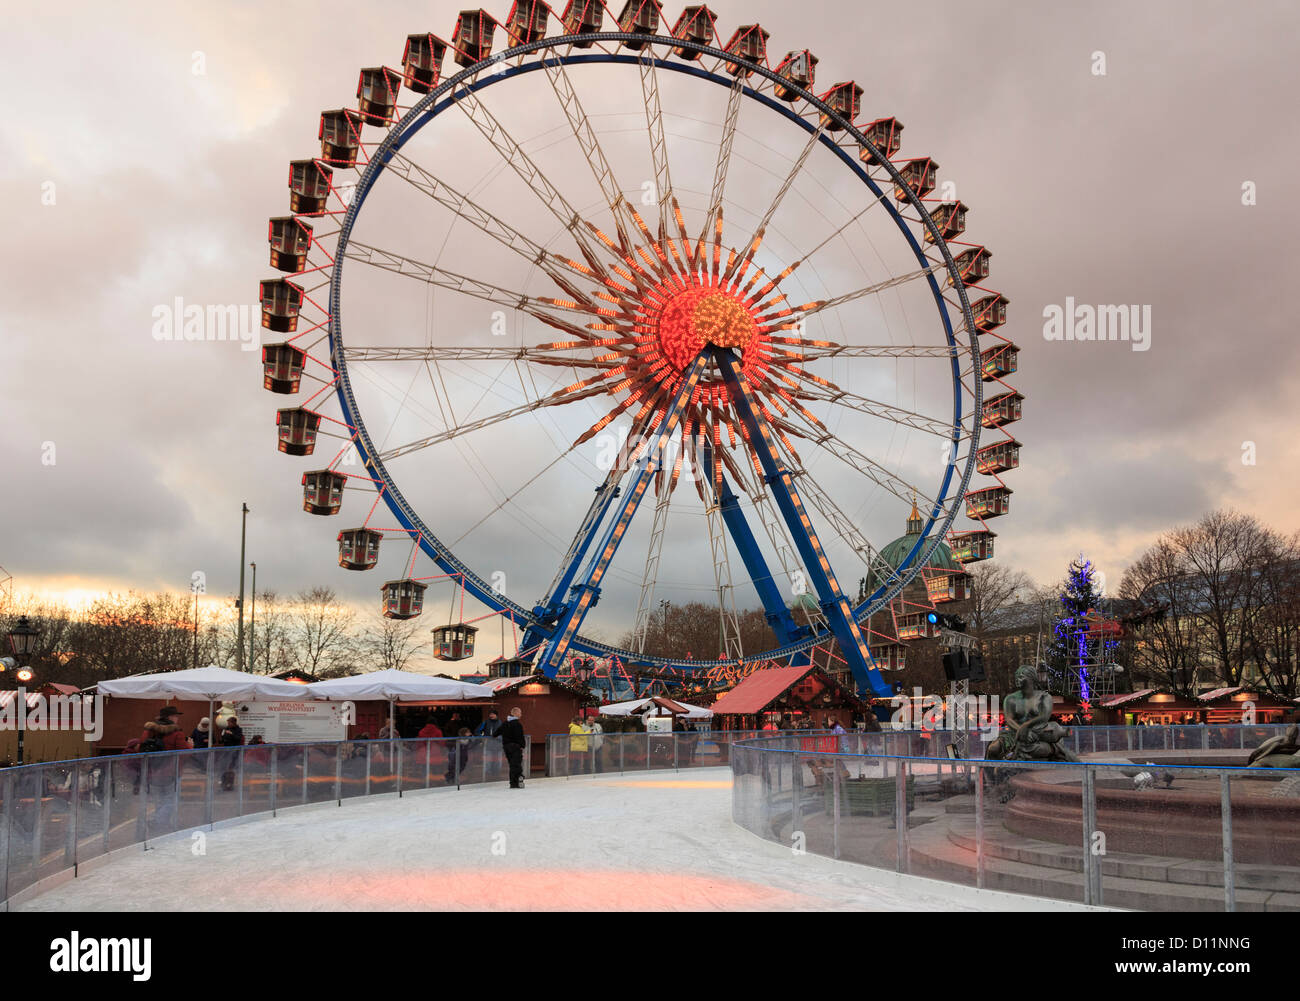 Ice skating rink and big wheel at a traditional Christmas market in the evening at Alexanderplatz, Berlin, Germany Stock Photo